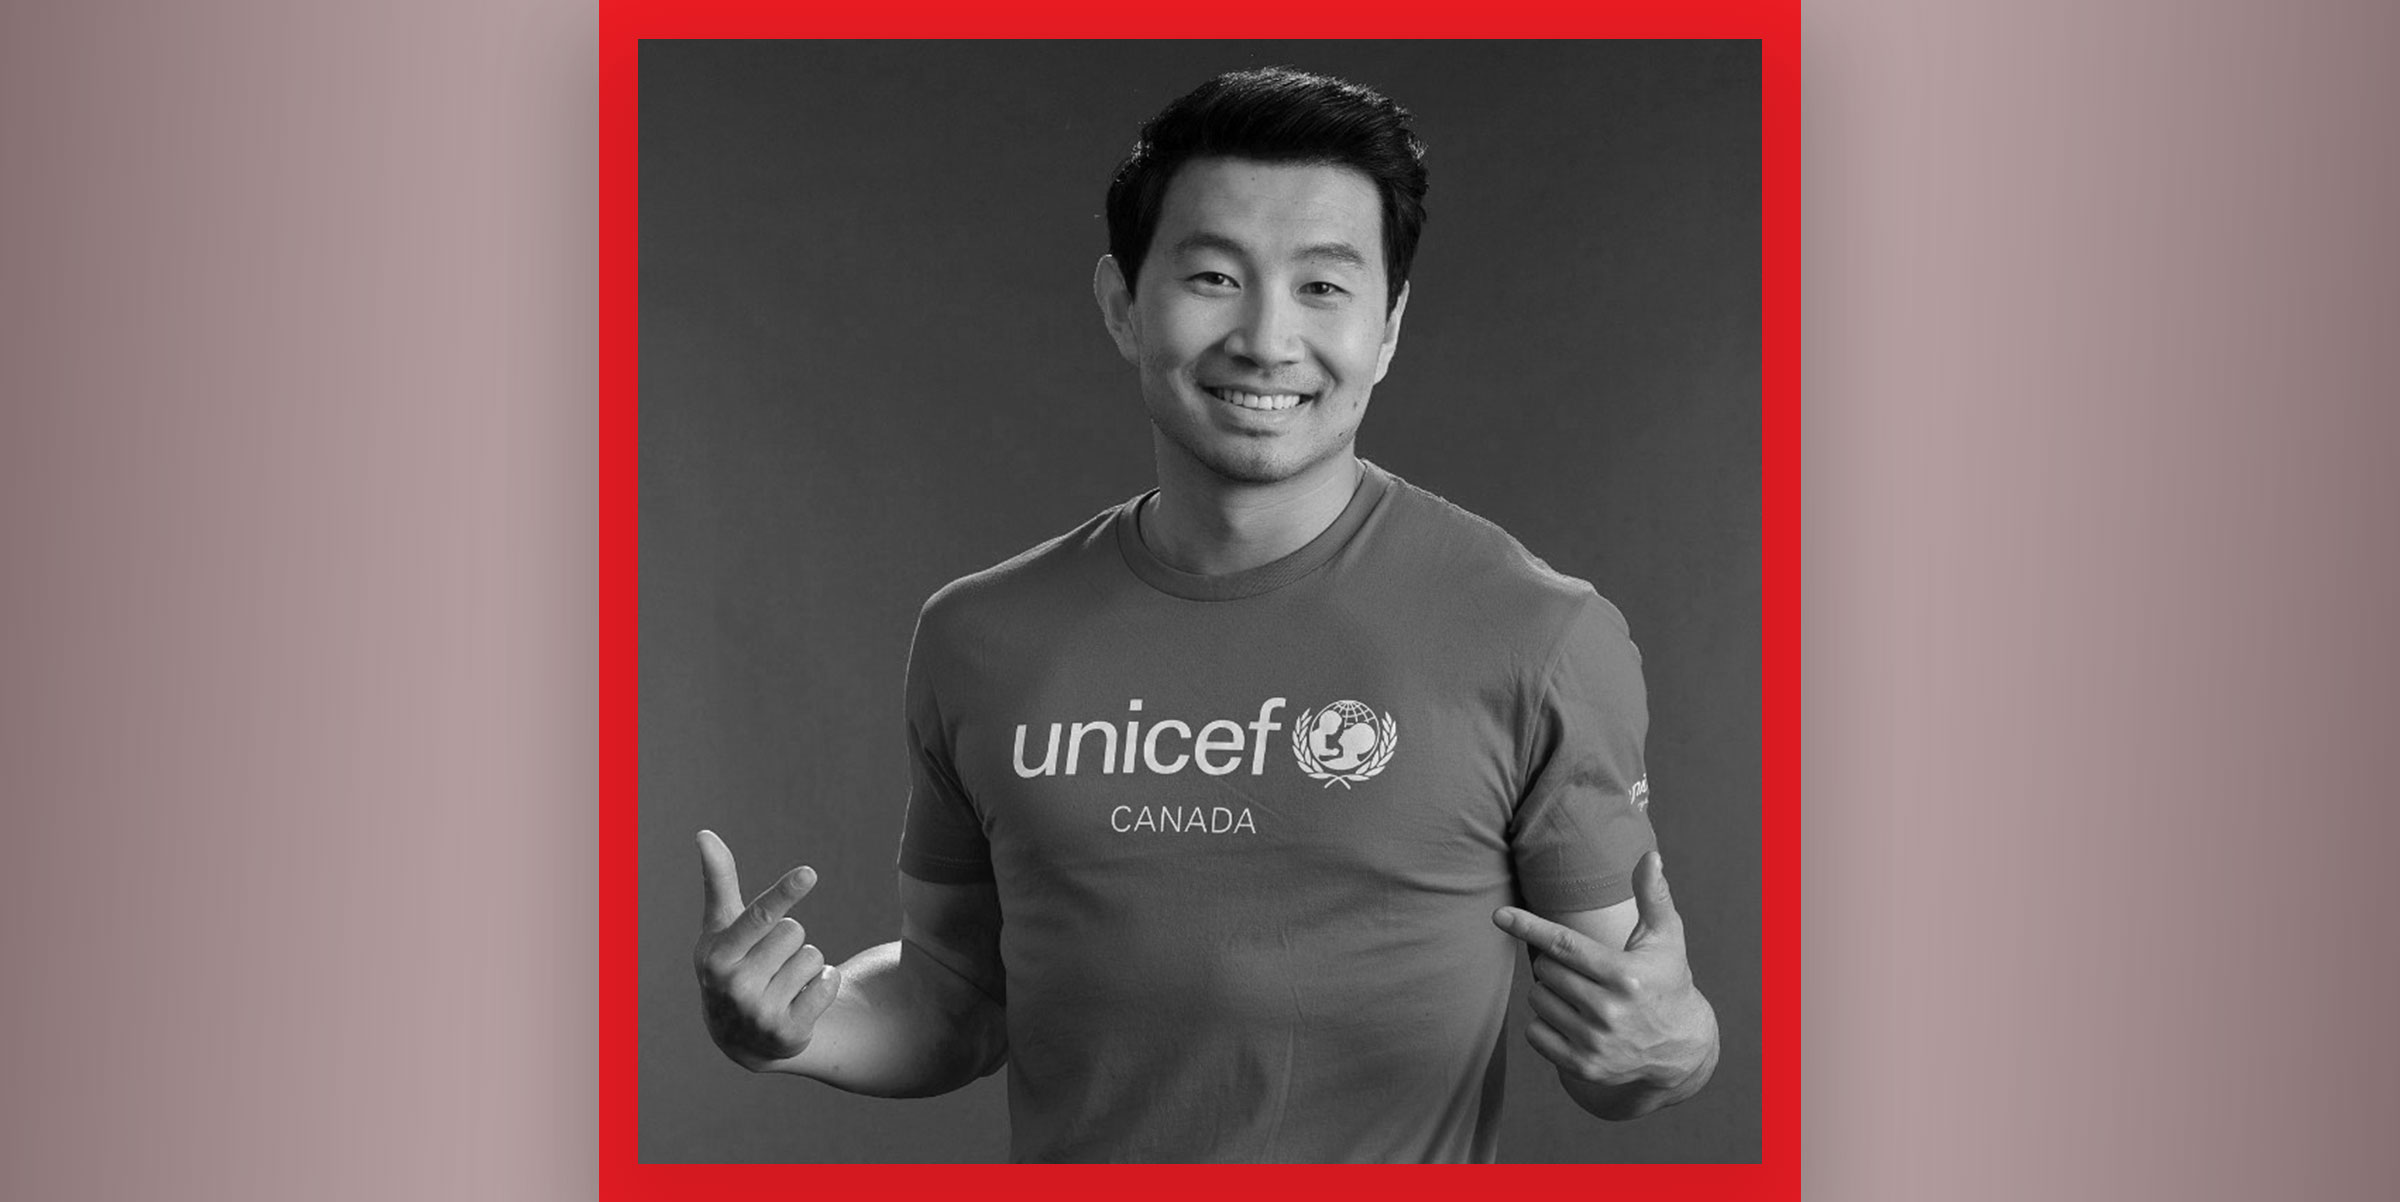 Simu Liu discussed the importance of representation, and his work with UNICEF Canada at the TIME100 Talks on Jan. 29, 2021.